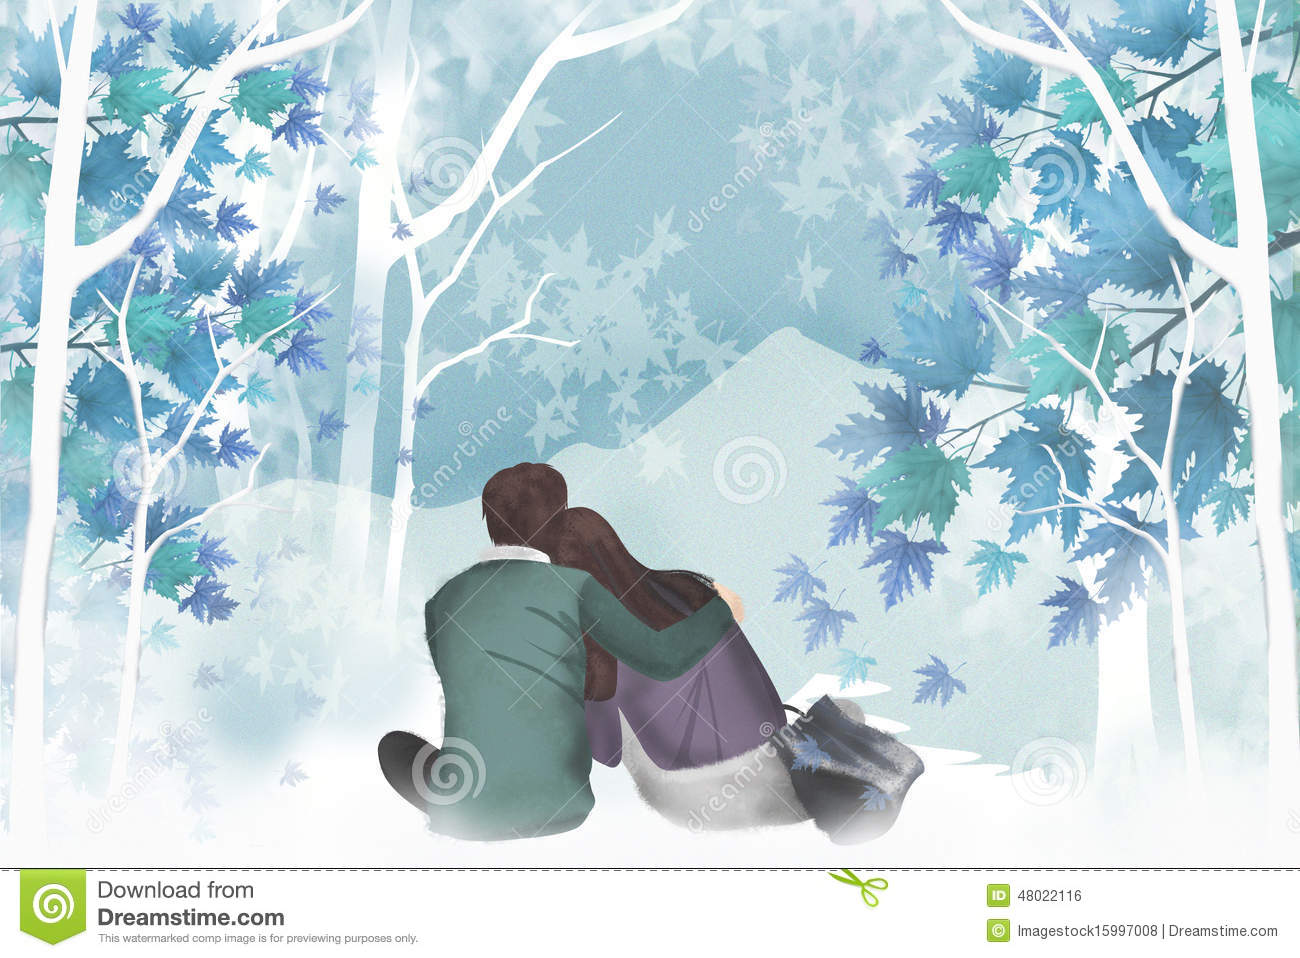 Sweet And Cute Couple Wallpaper Appearance Of The Couple Rests On The Shoulders Of A Man